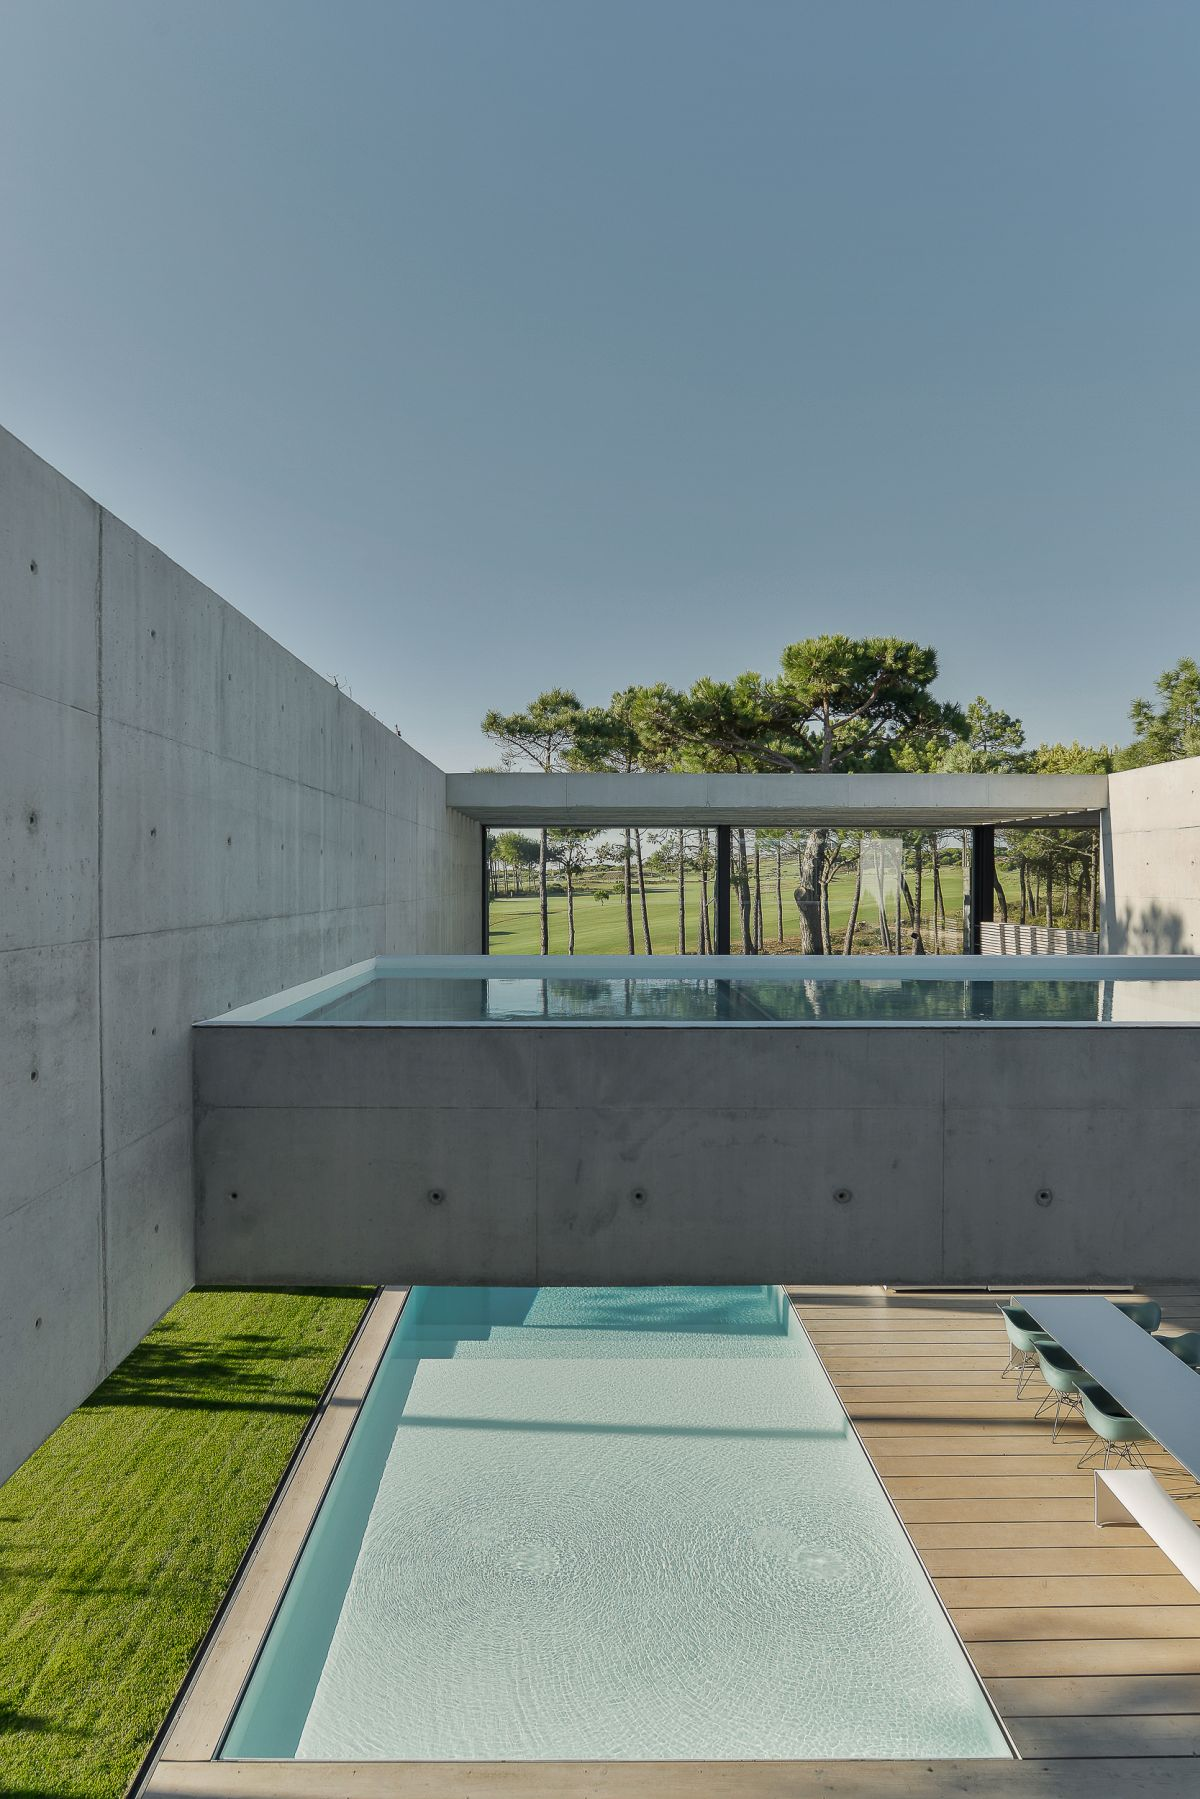 The concrete walls and upper pool are spectacular design features.